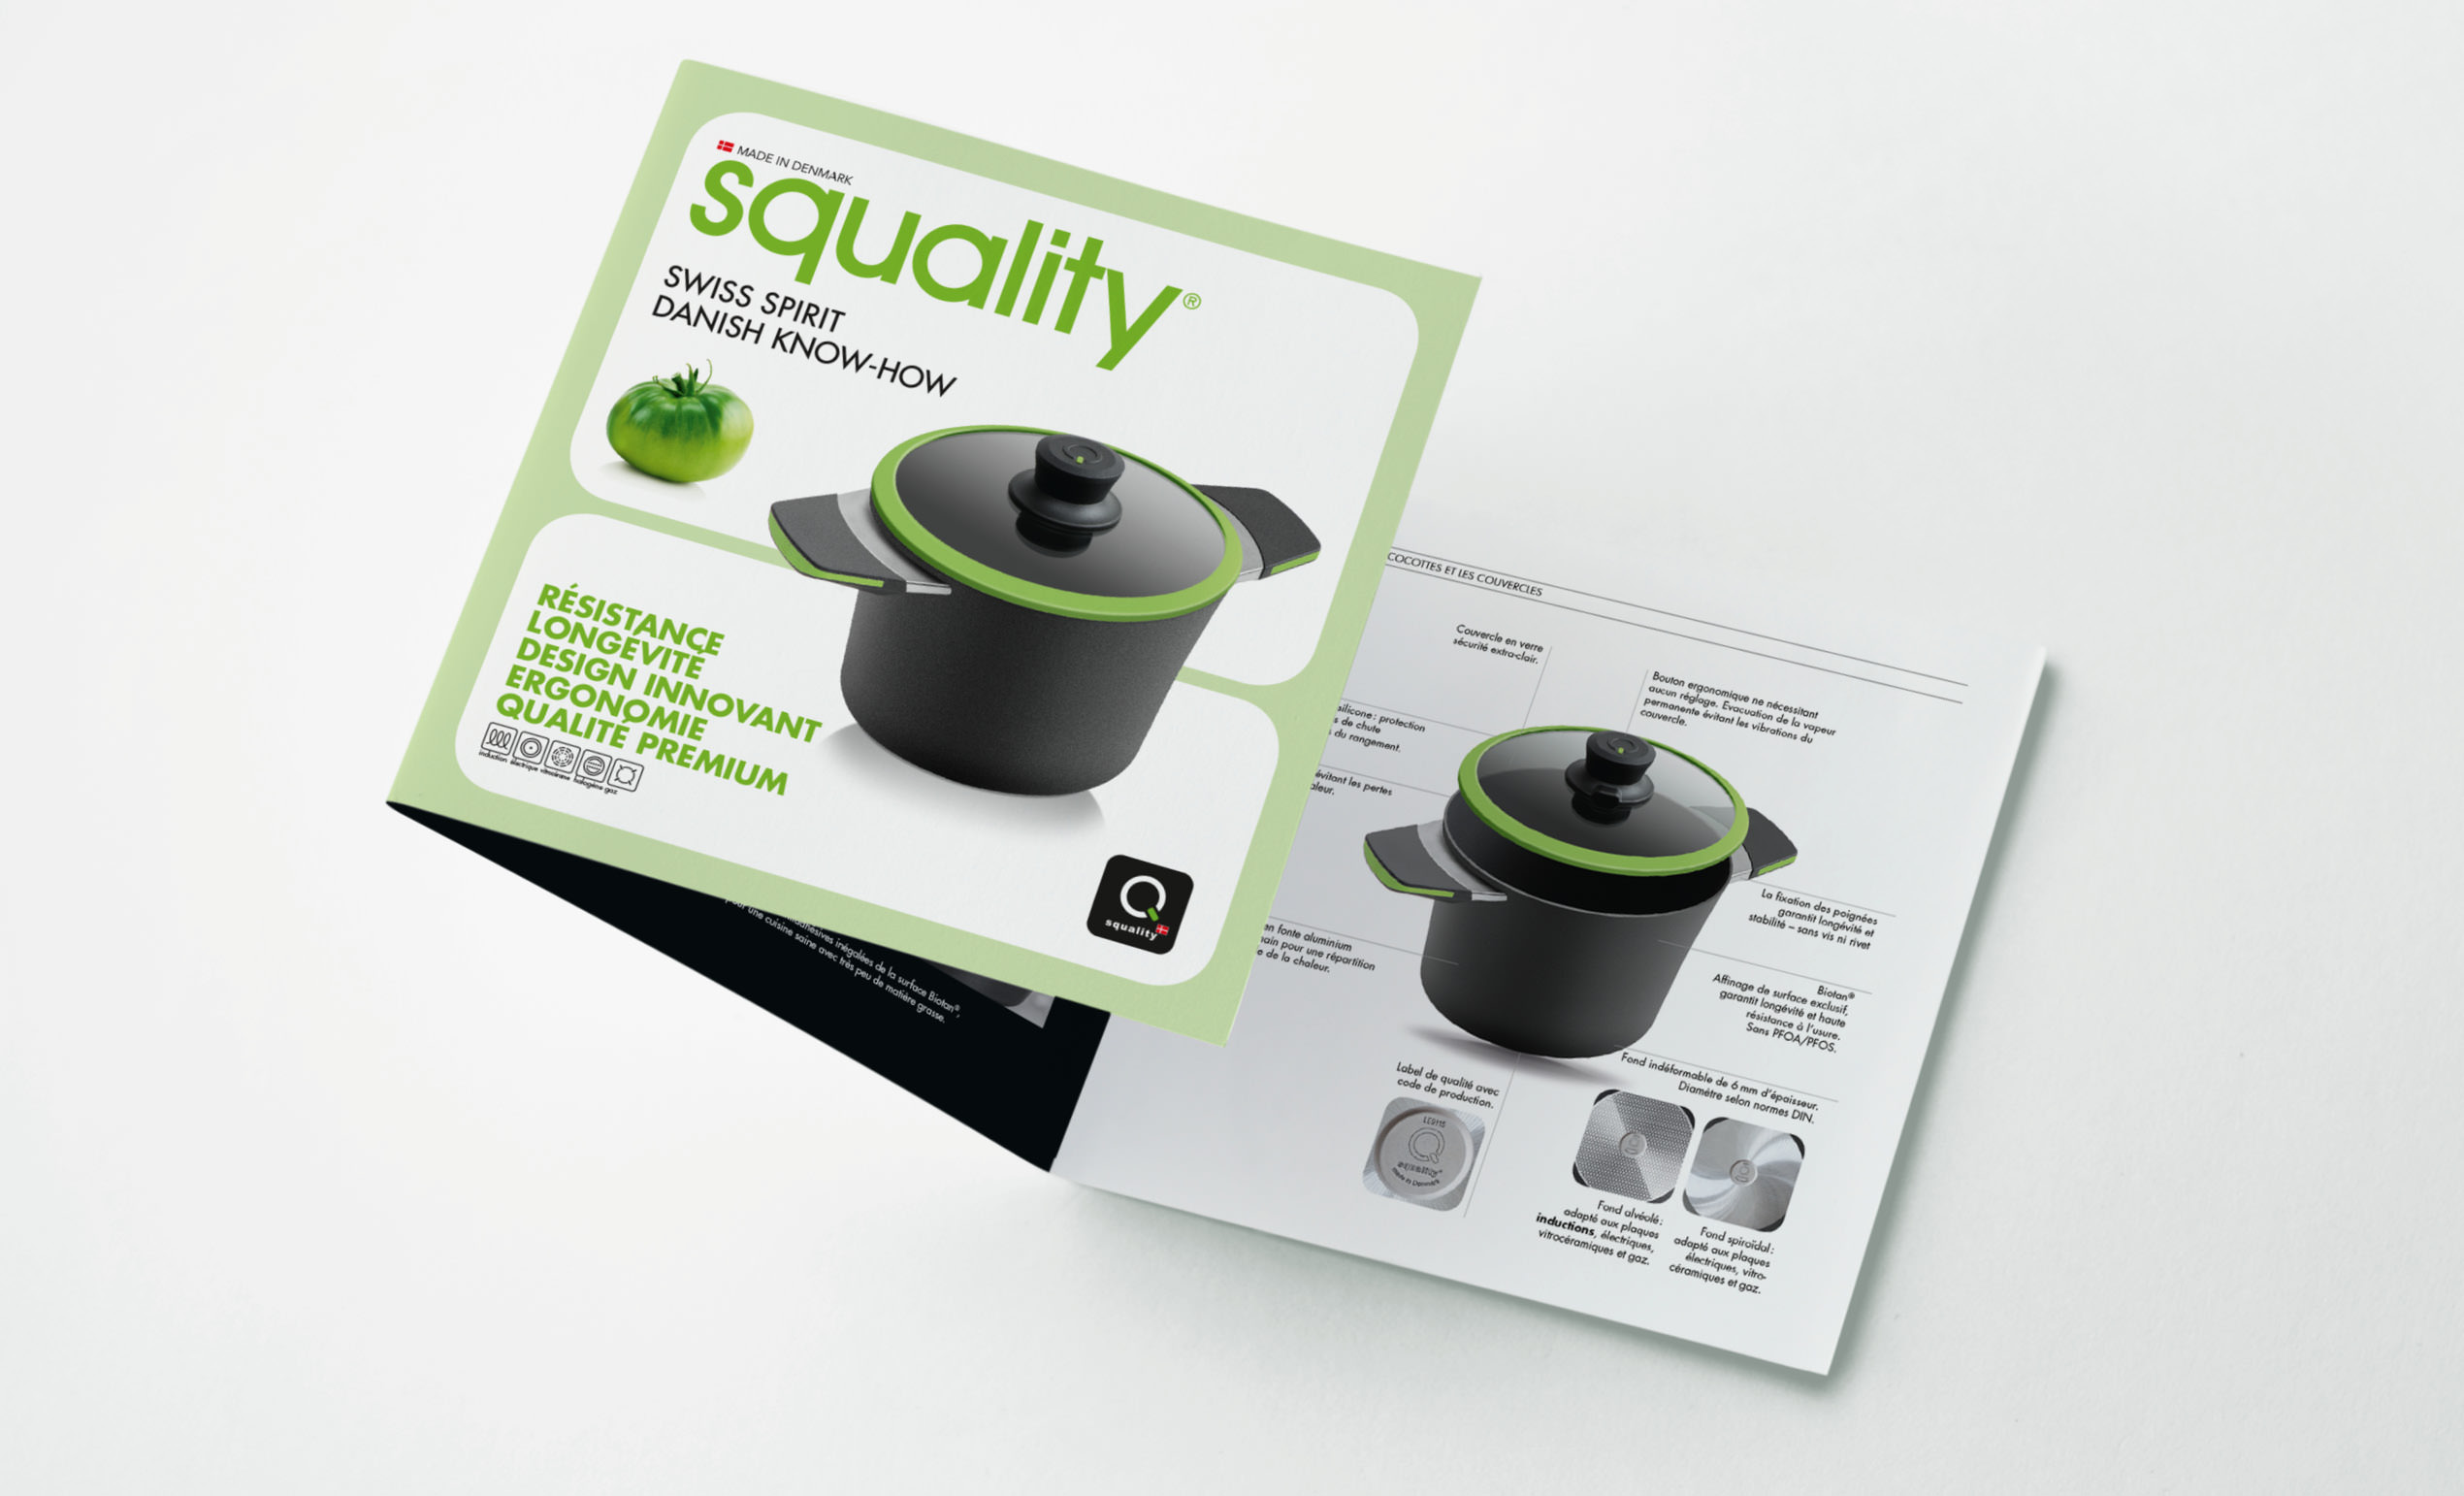 squality5